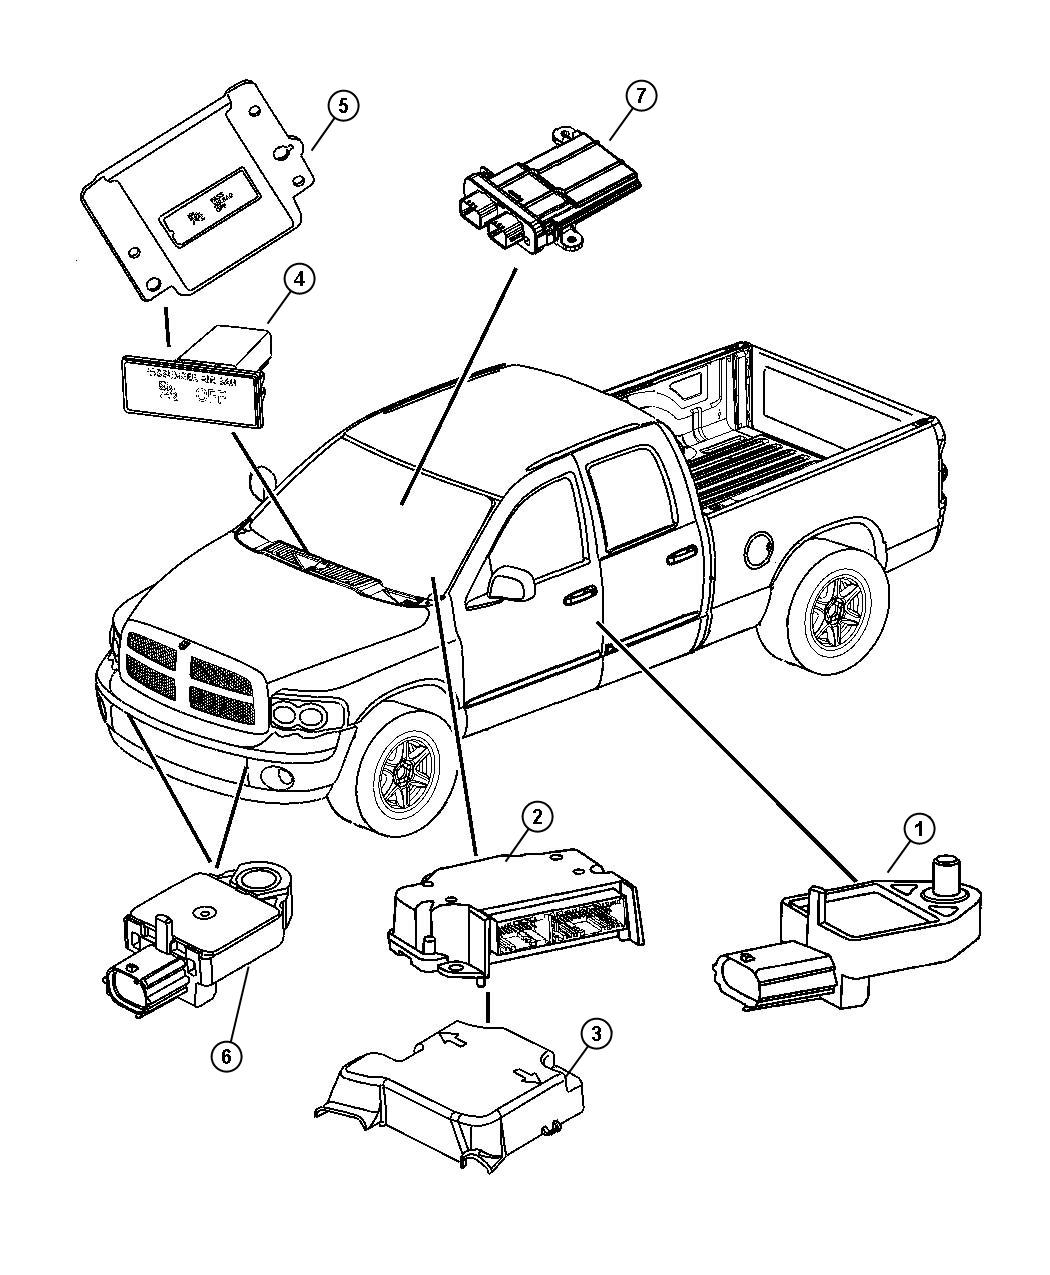 Dodge Ram Air Bag Modules And Sensors